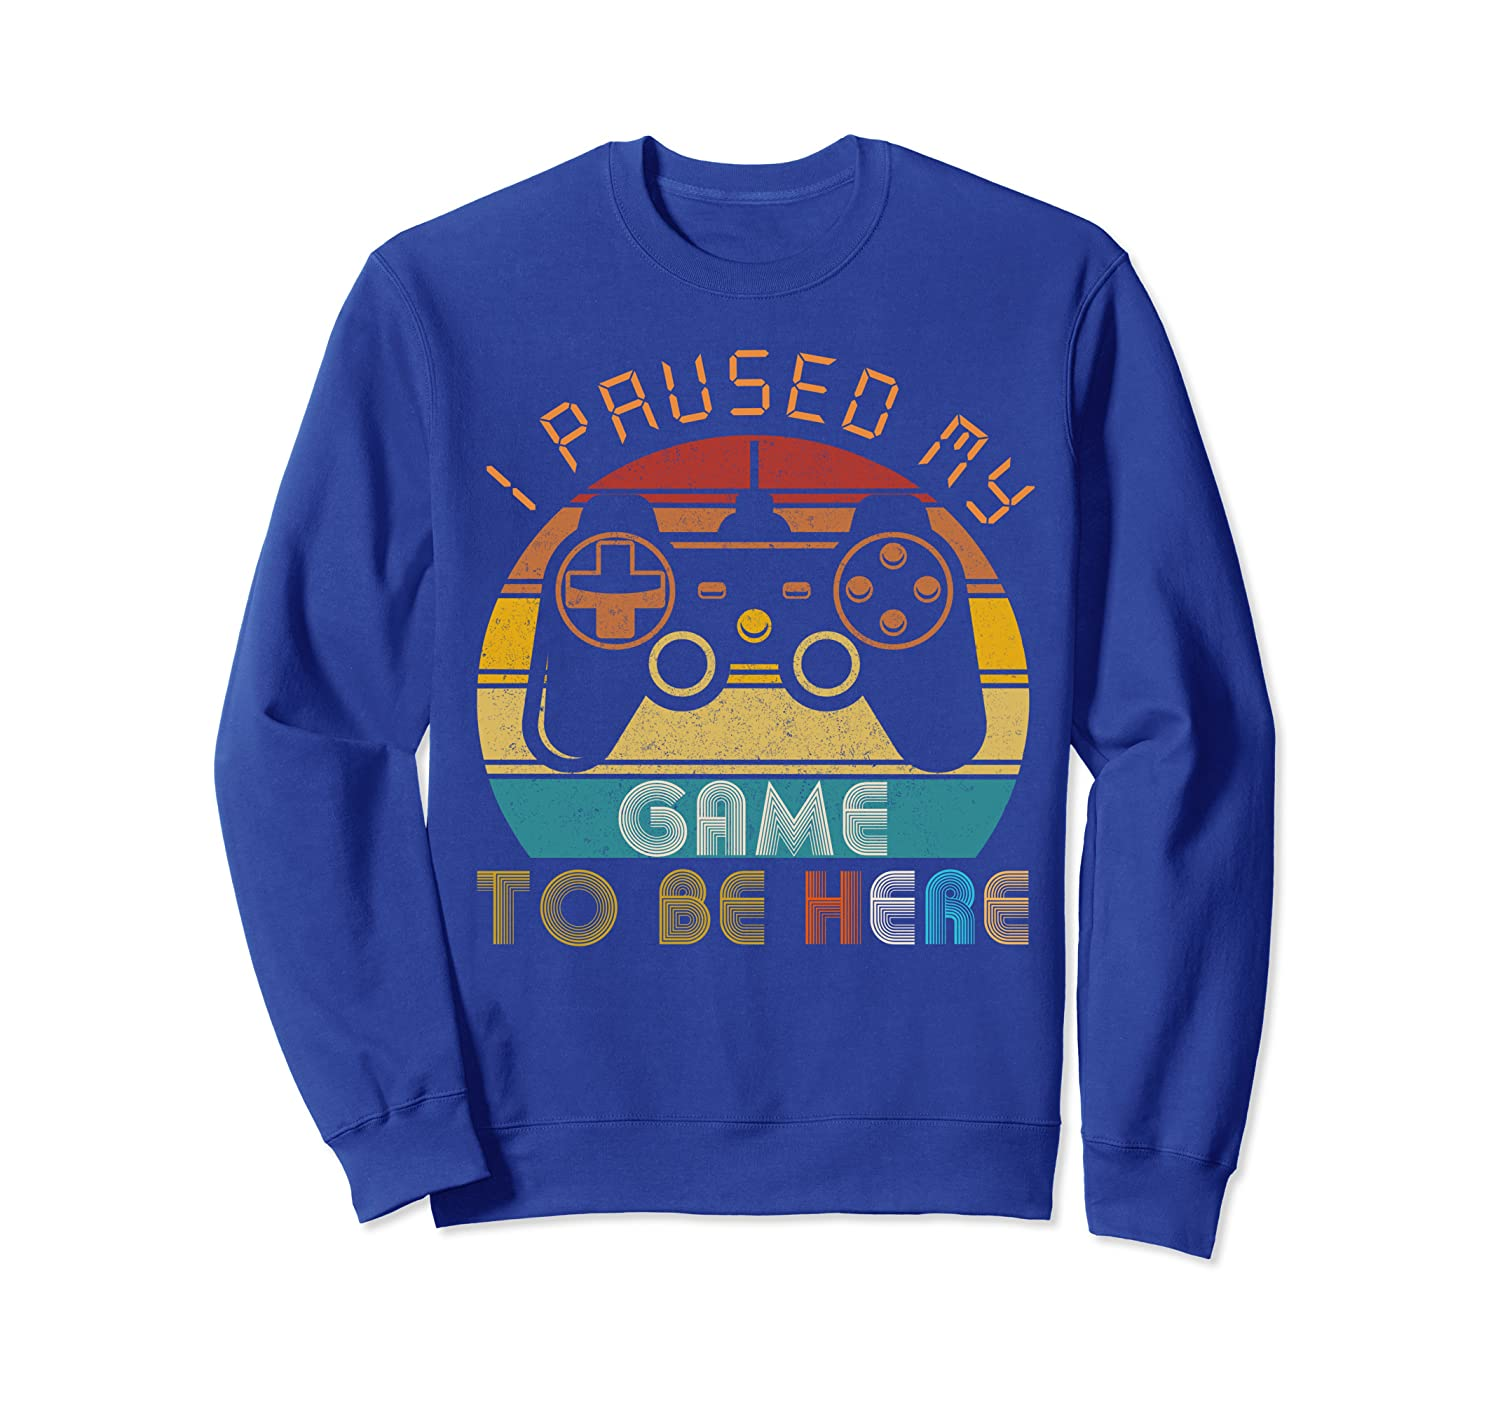 Vintage I Paused My Game To Be Here Video Gamer Gift Sweatshirt-TH